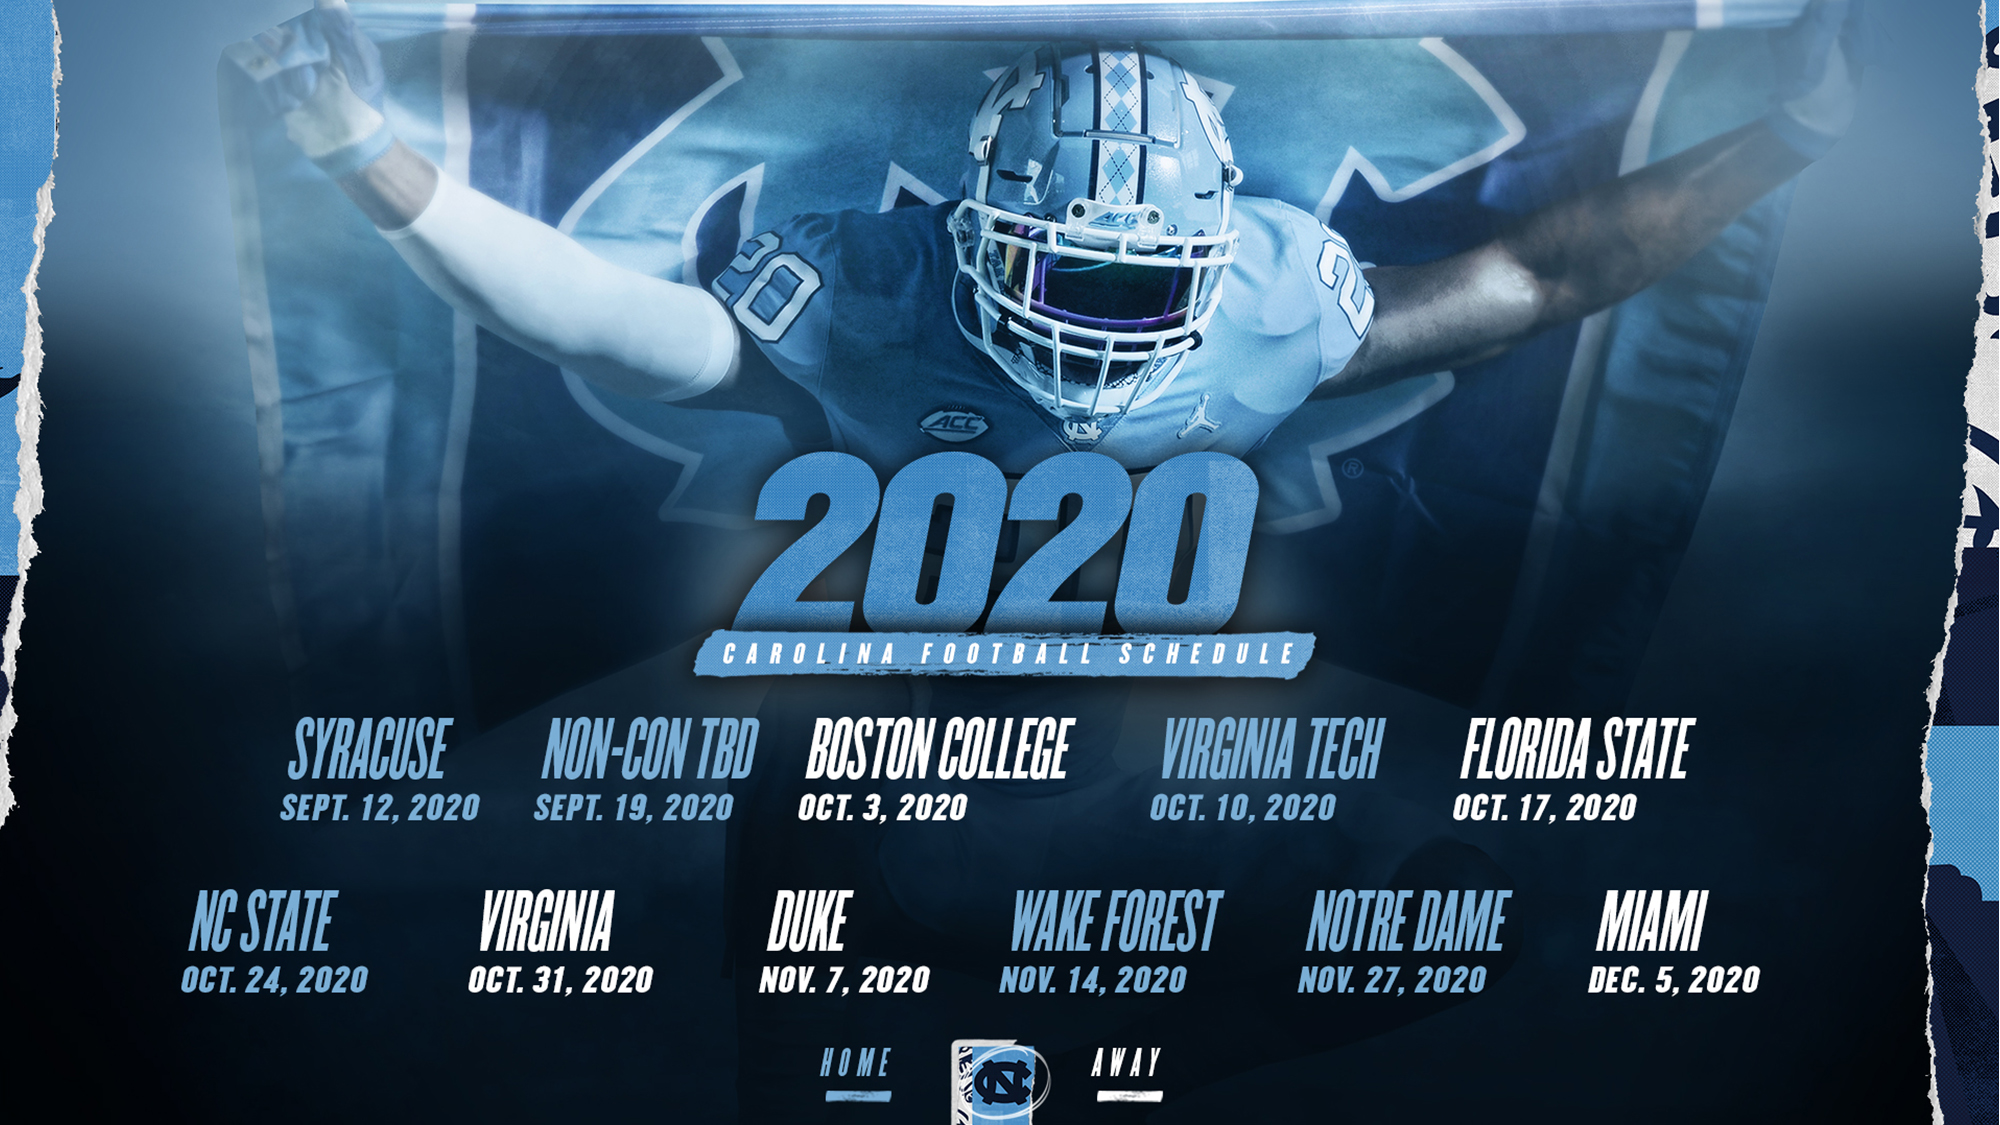 Acc Releases Revamped 2020 Football Schedule University Of North Carolina Athletics